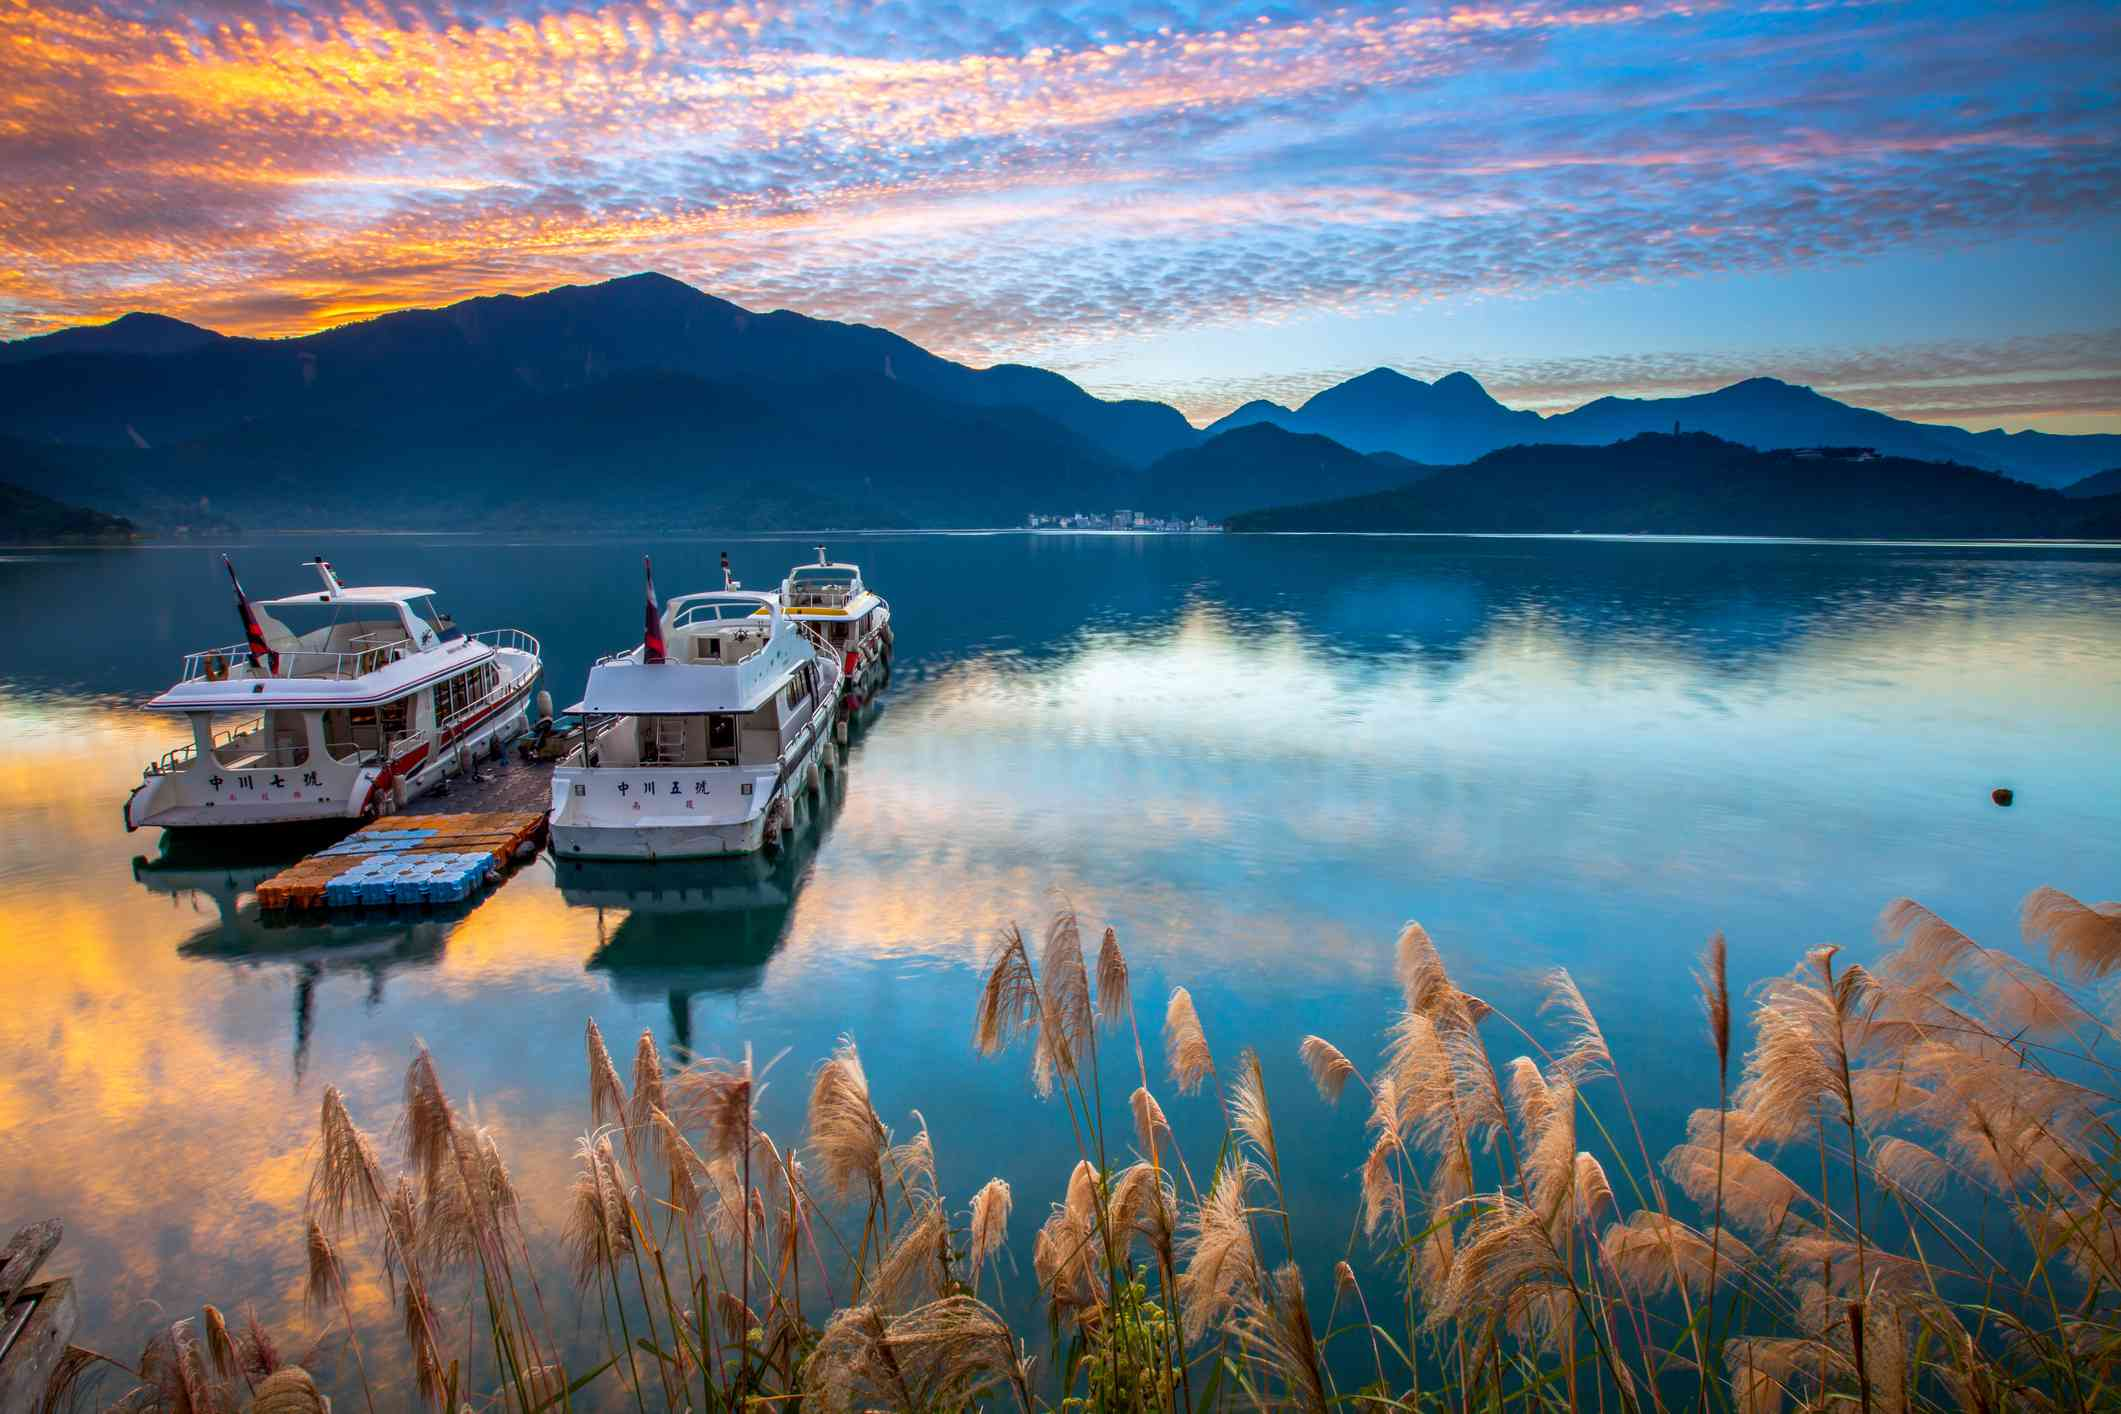 Scenery the famous attraction in Taiwan, Asia. Sun Moon Lake, Sun Moon Lake in Taiwan